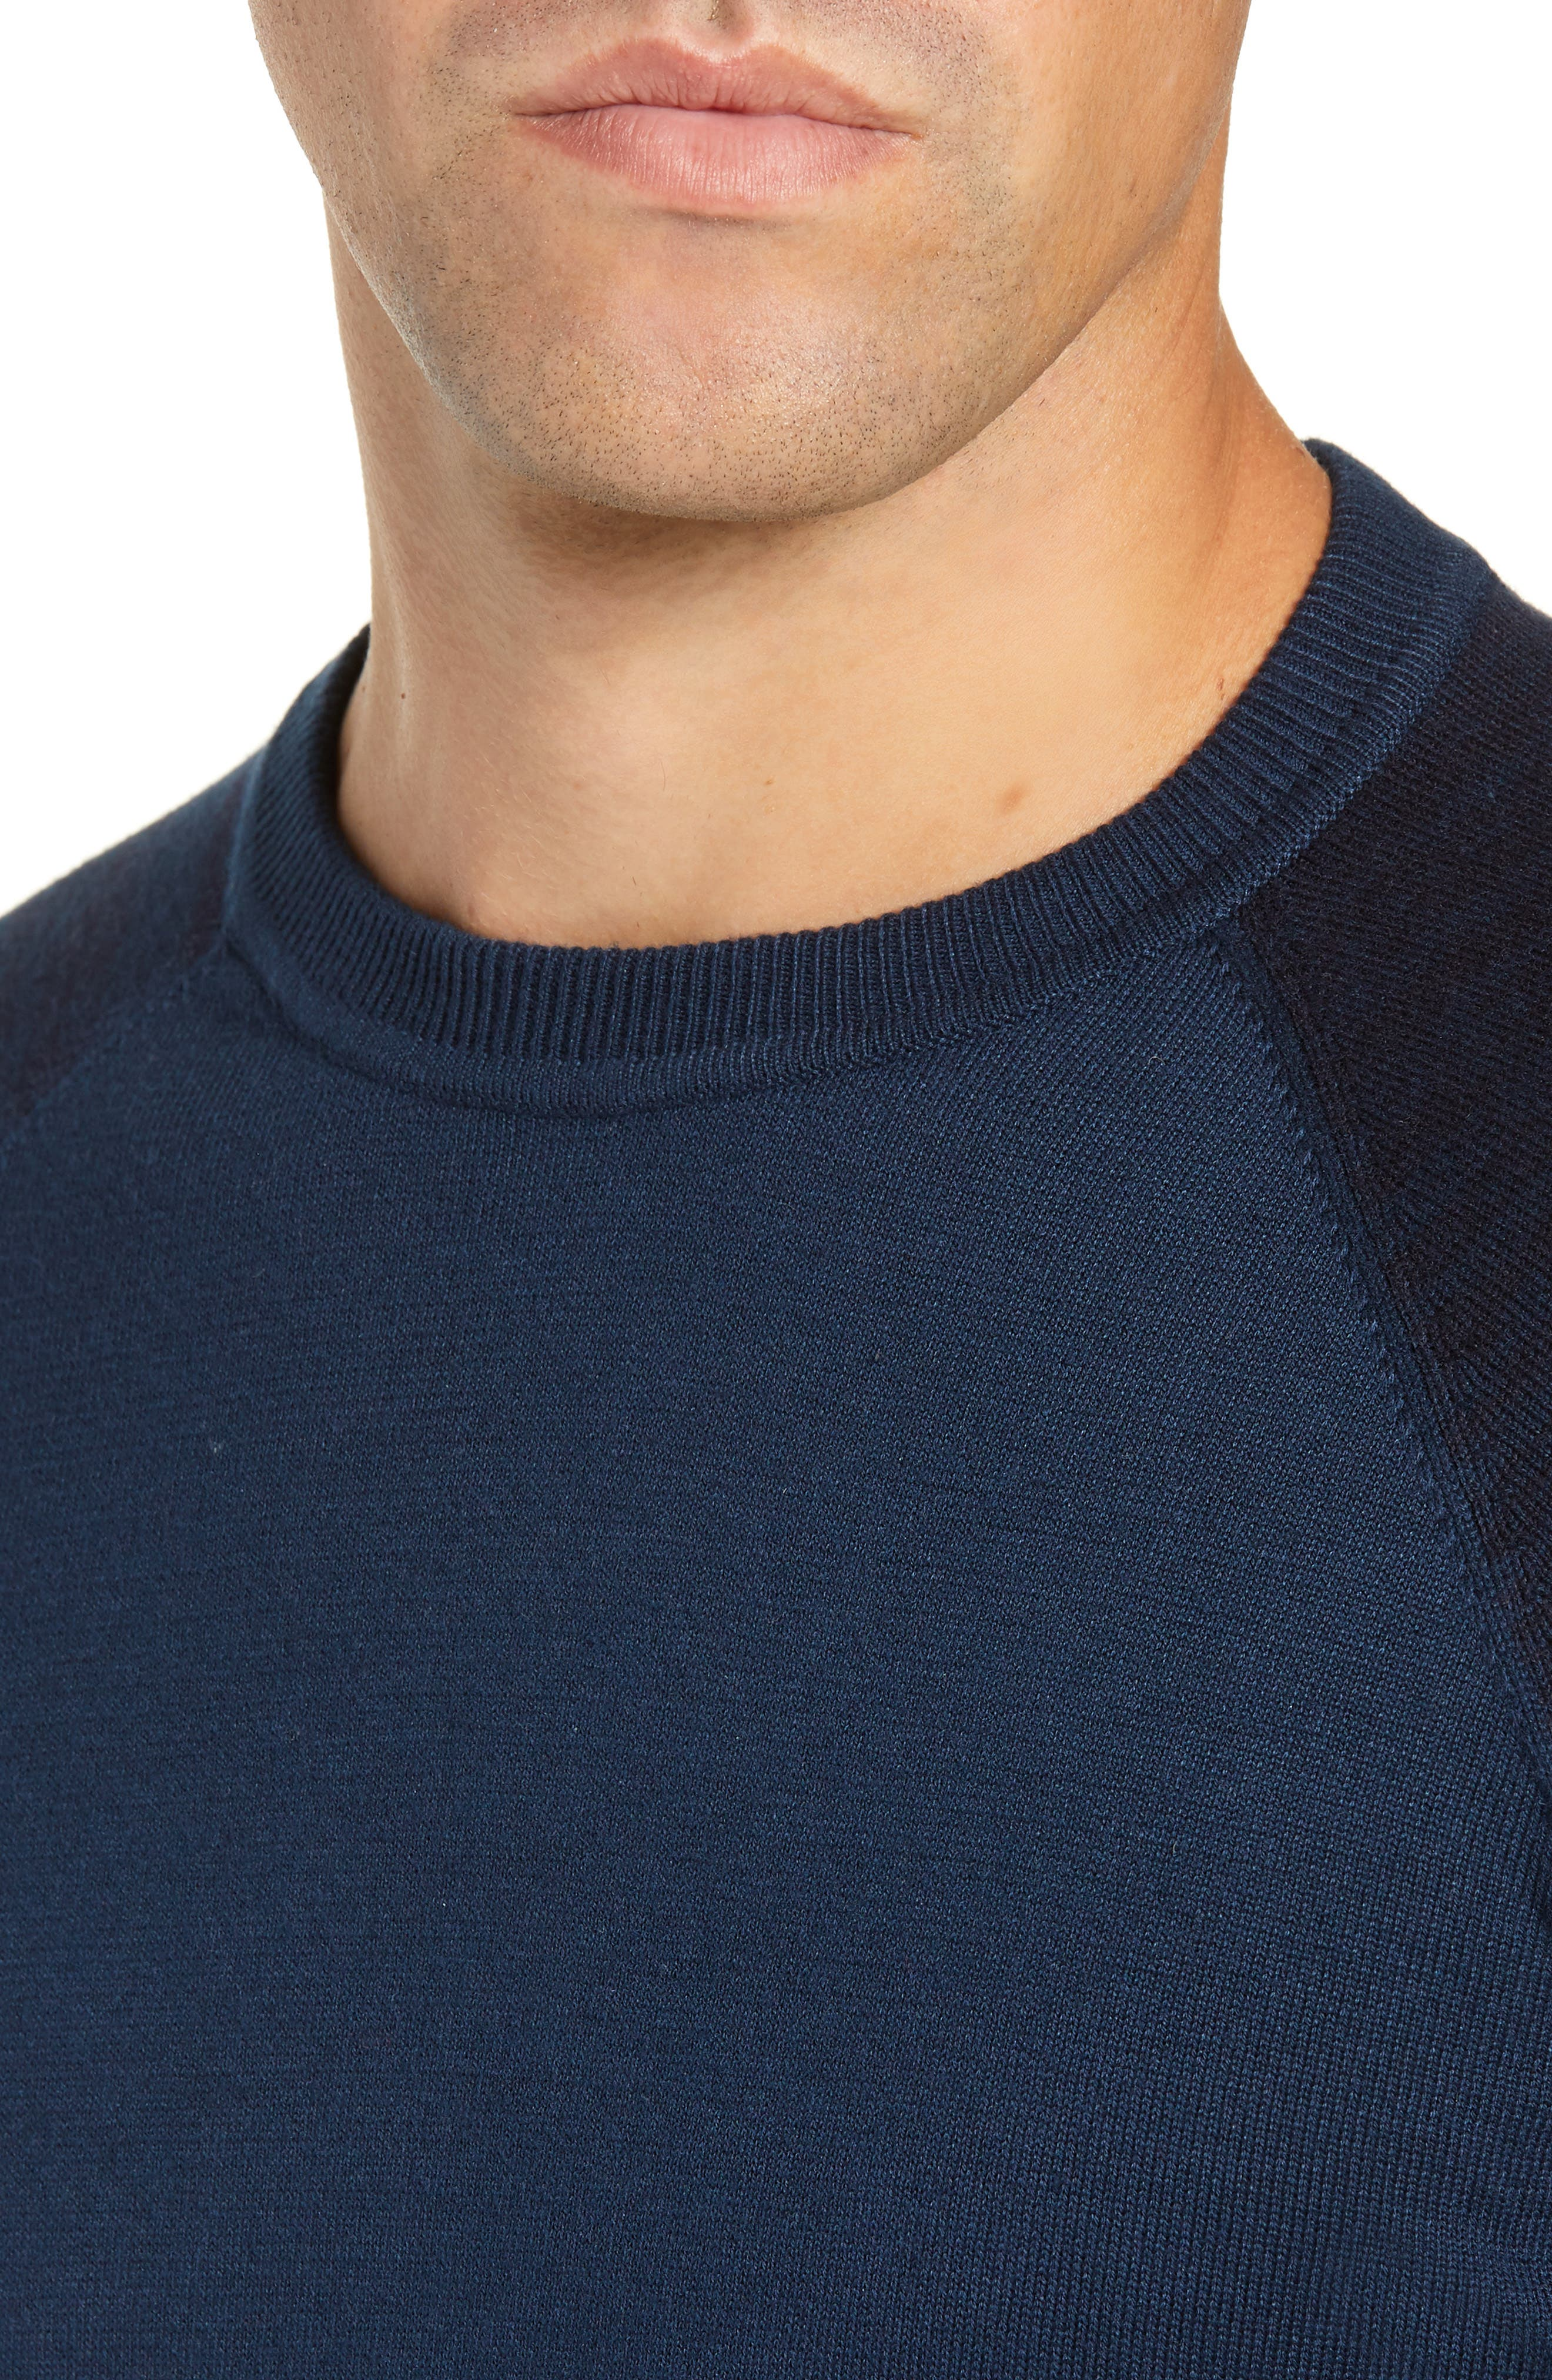 Cornfed Slim Fit Sweater,                             Alternate thumbnail 4, color,                             TEAL-BLUE